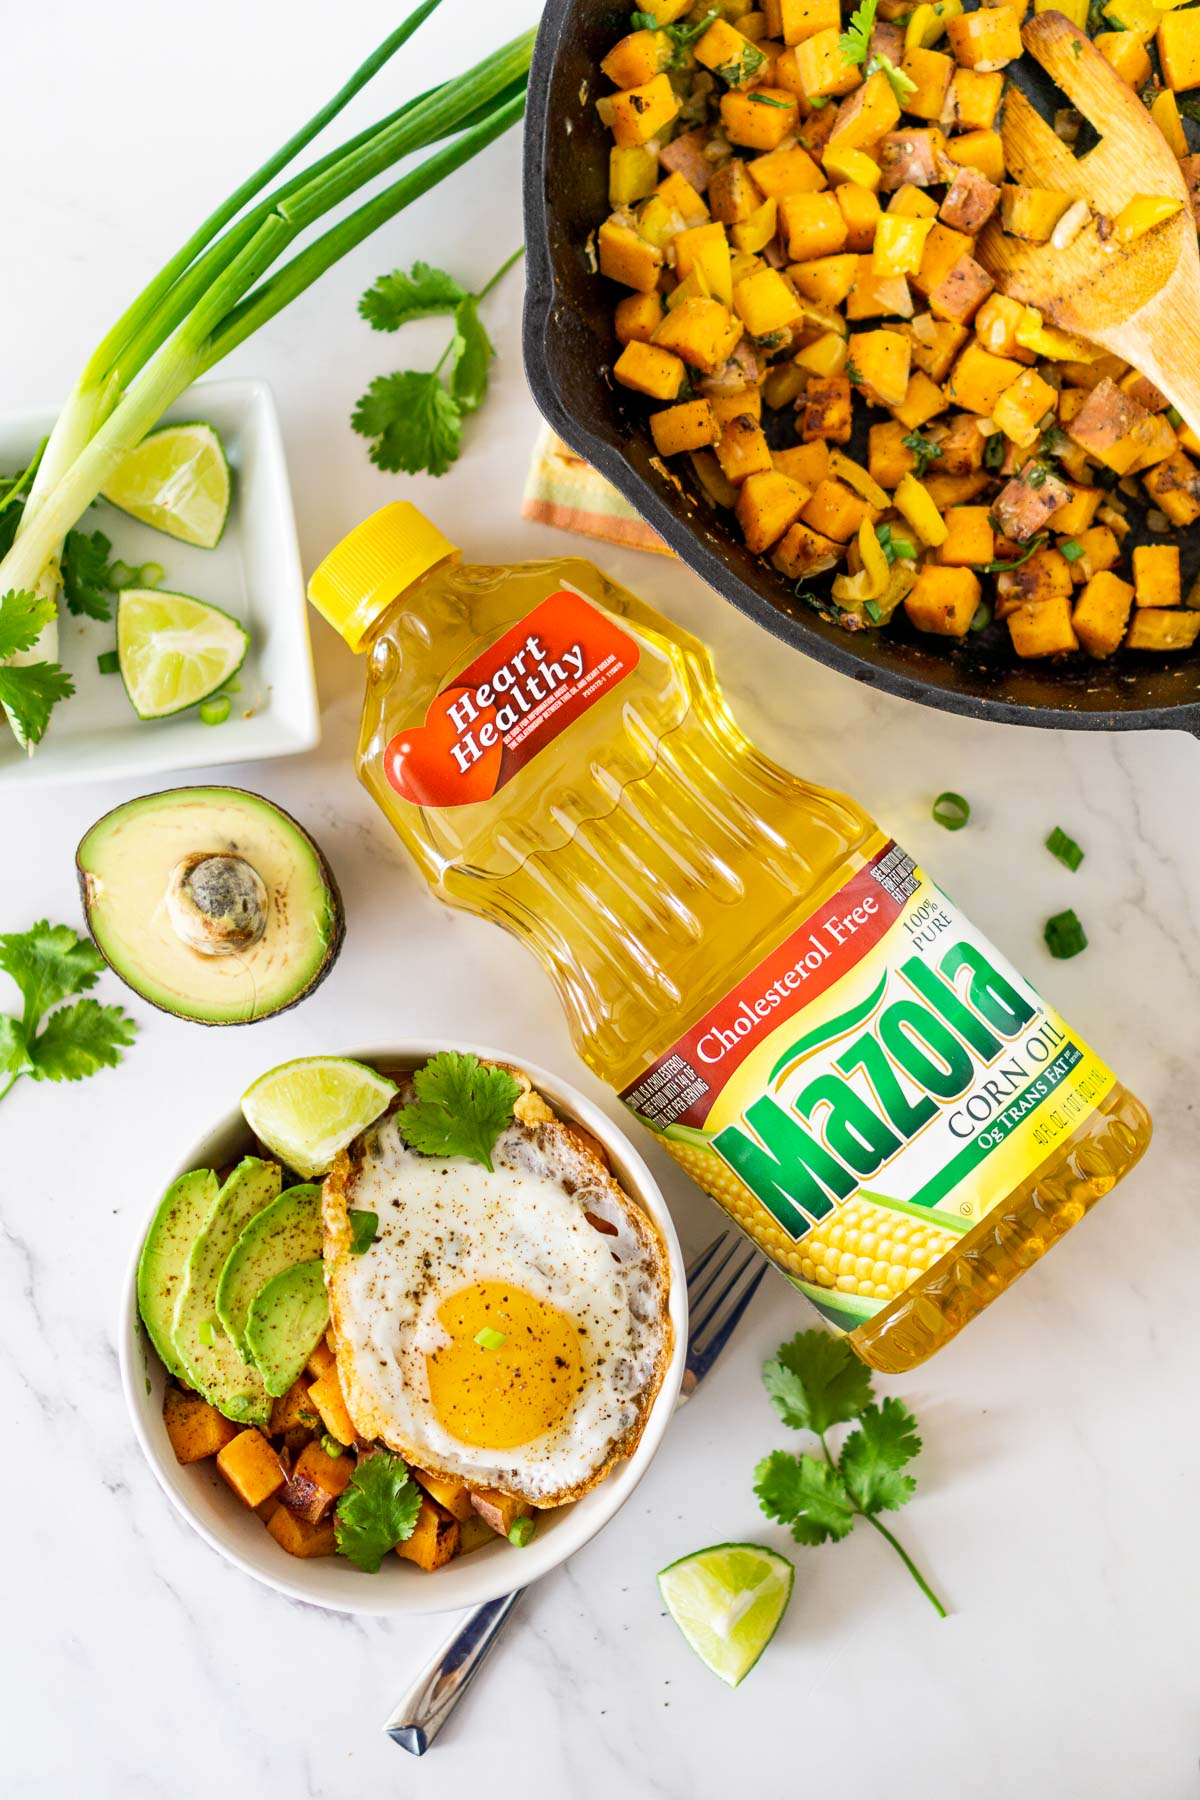 bowl of sweet potato breakfast hash with a bottle of corn oil next to it